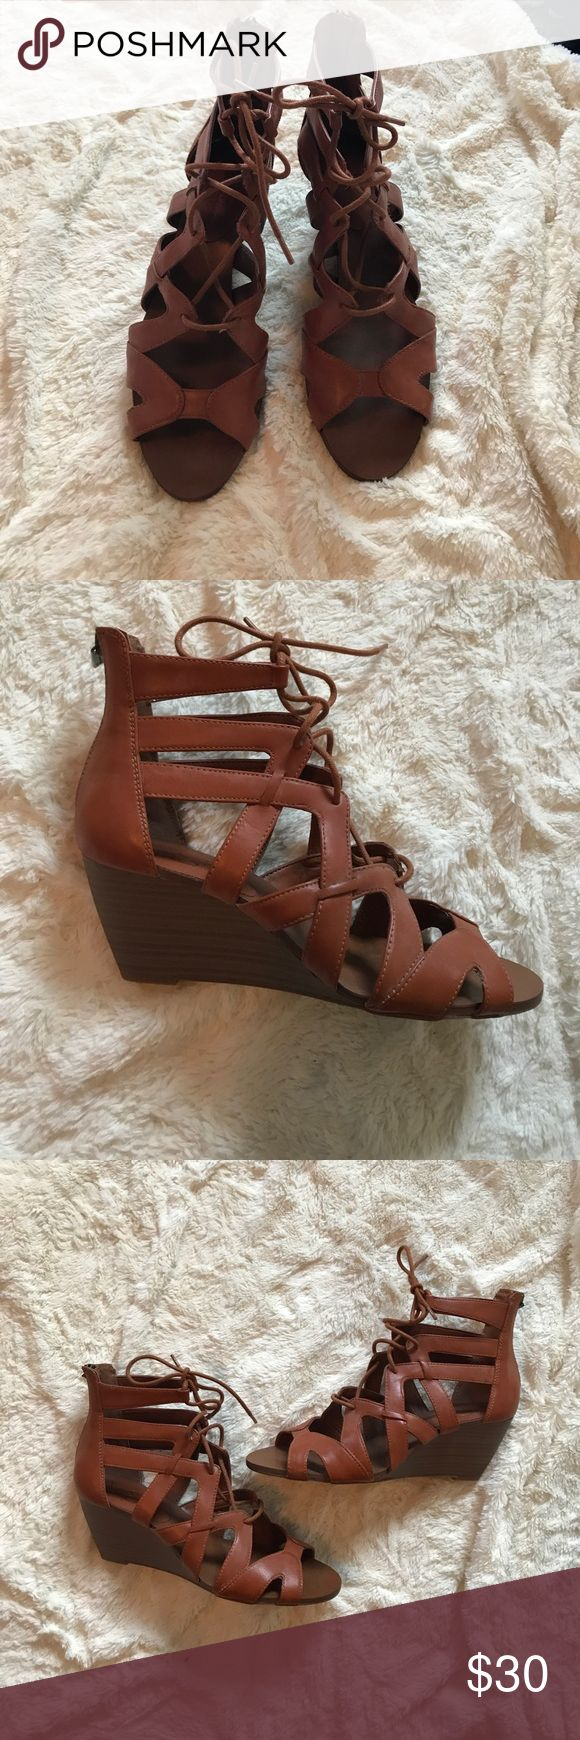 Jessica Simpson wedge sandals NWOT Jessica Simpson wedge sandals. Cognac color. Lace up with zip in the back. Size 7.5. New without tags Jessica Simpson Shoes Sandals